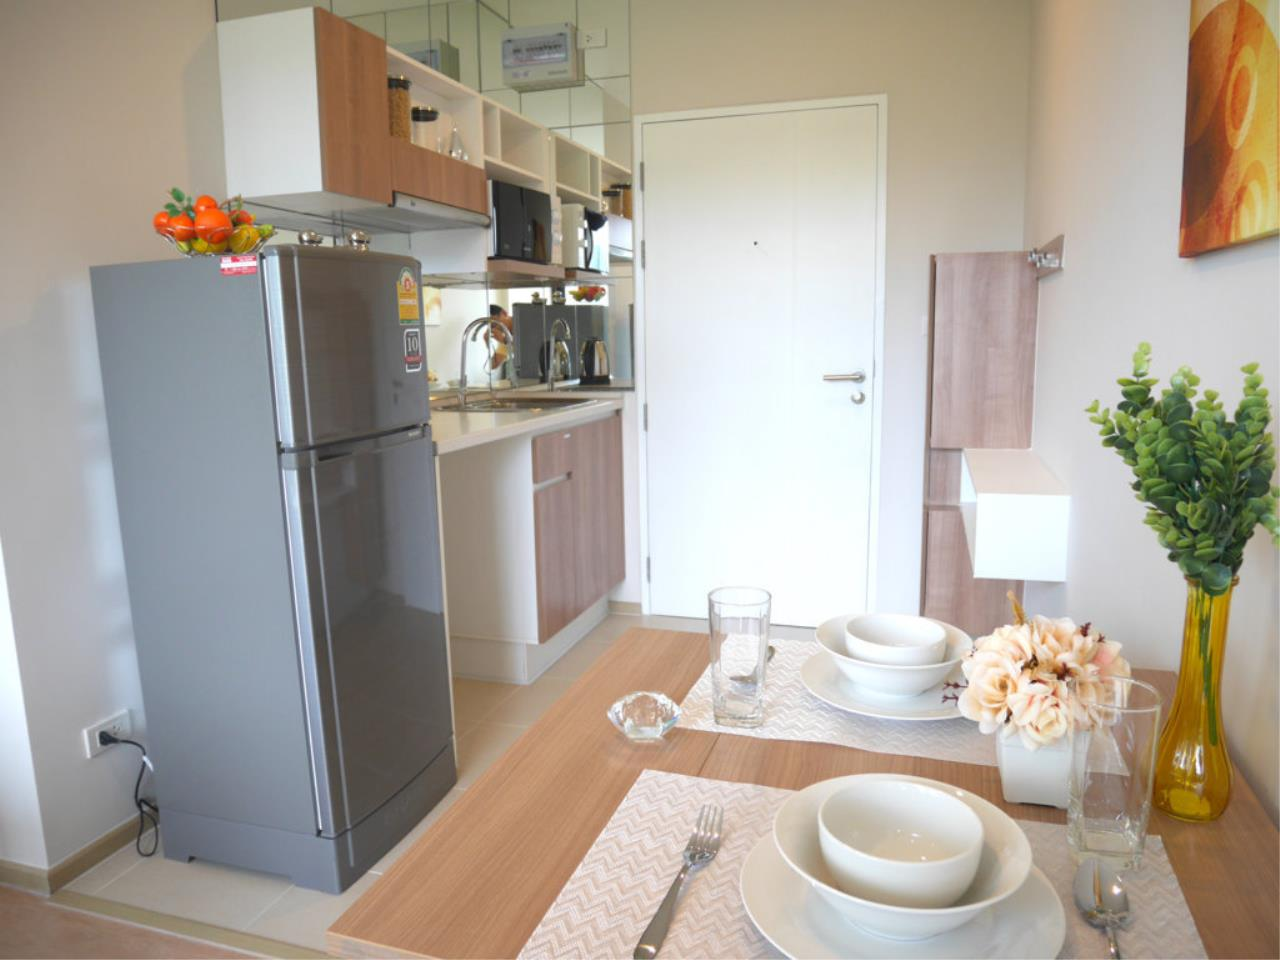 REAL Phuket  Agency's ZCape II Condominium @ Boat Avenue (Laguna) - 1-Bedroom Apartment 6